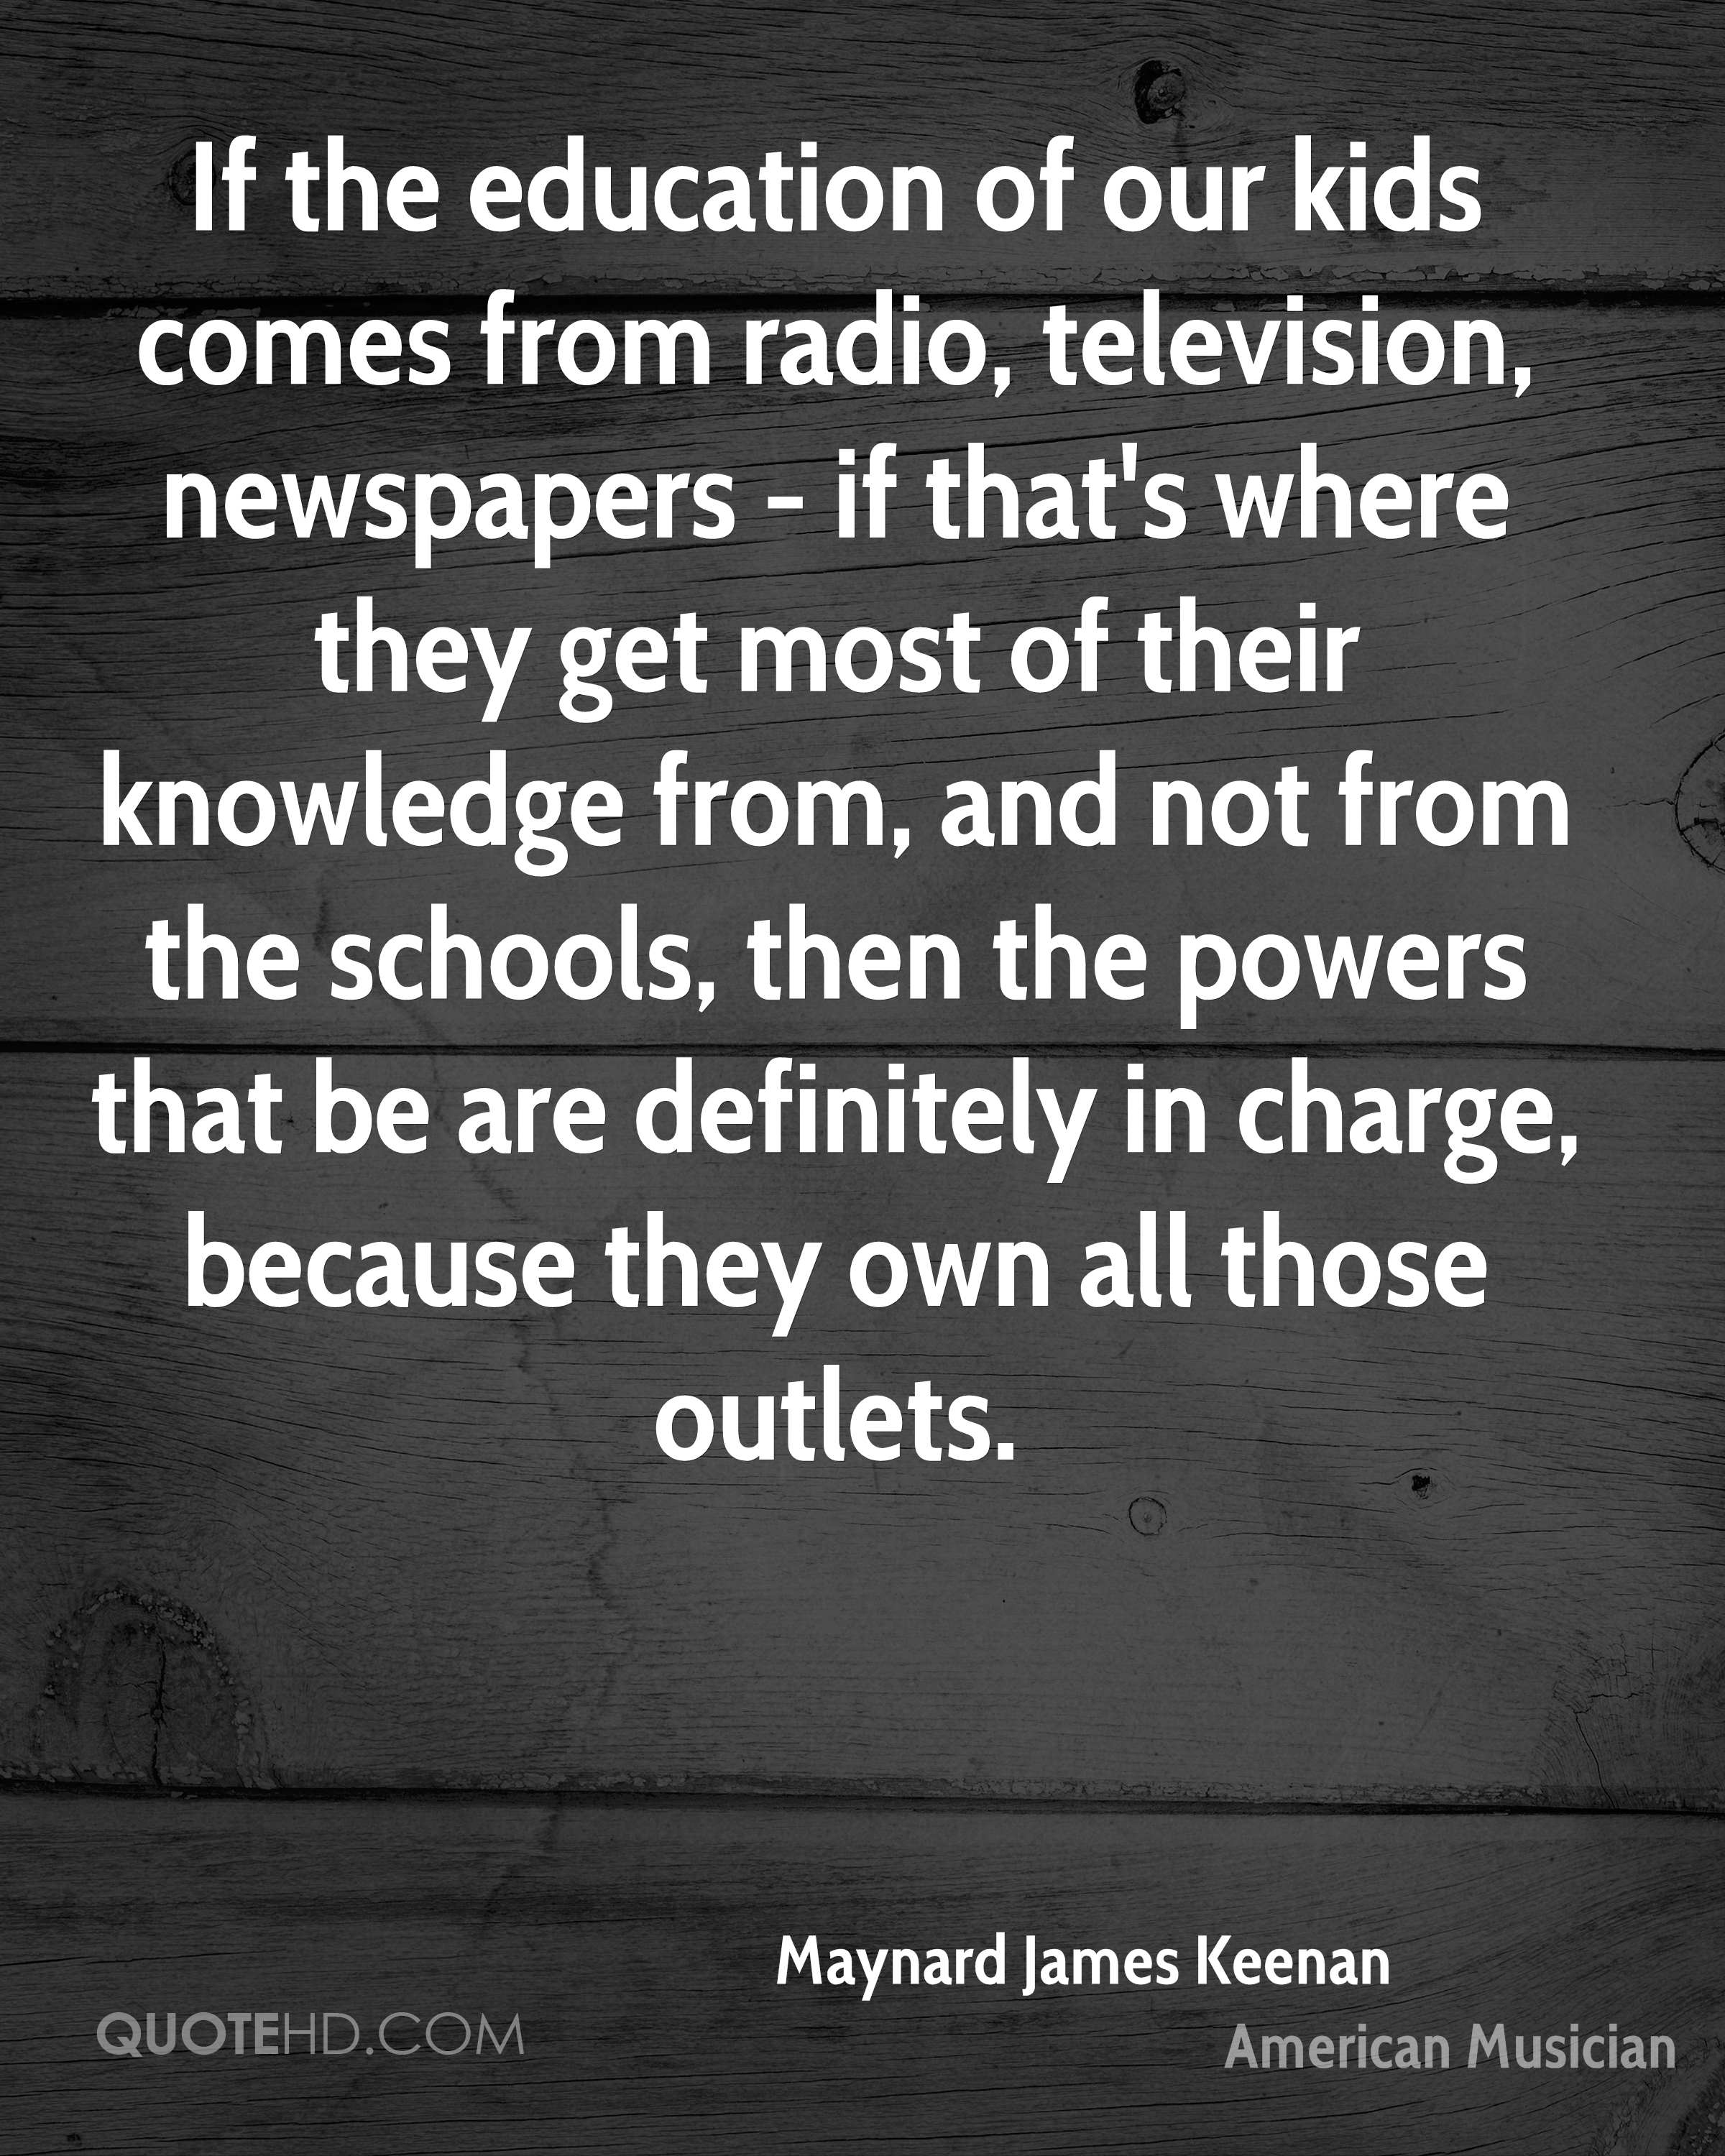 If the education of our kids comes from radio, television, newspapers - if that's where they get most of their knowledge from, and not from the schools, then the powers that be are definitely in charge, because they own all those outlets.